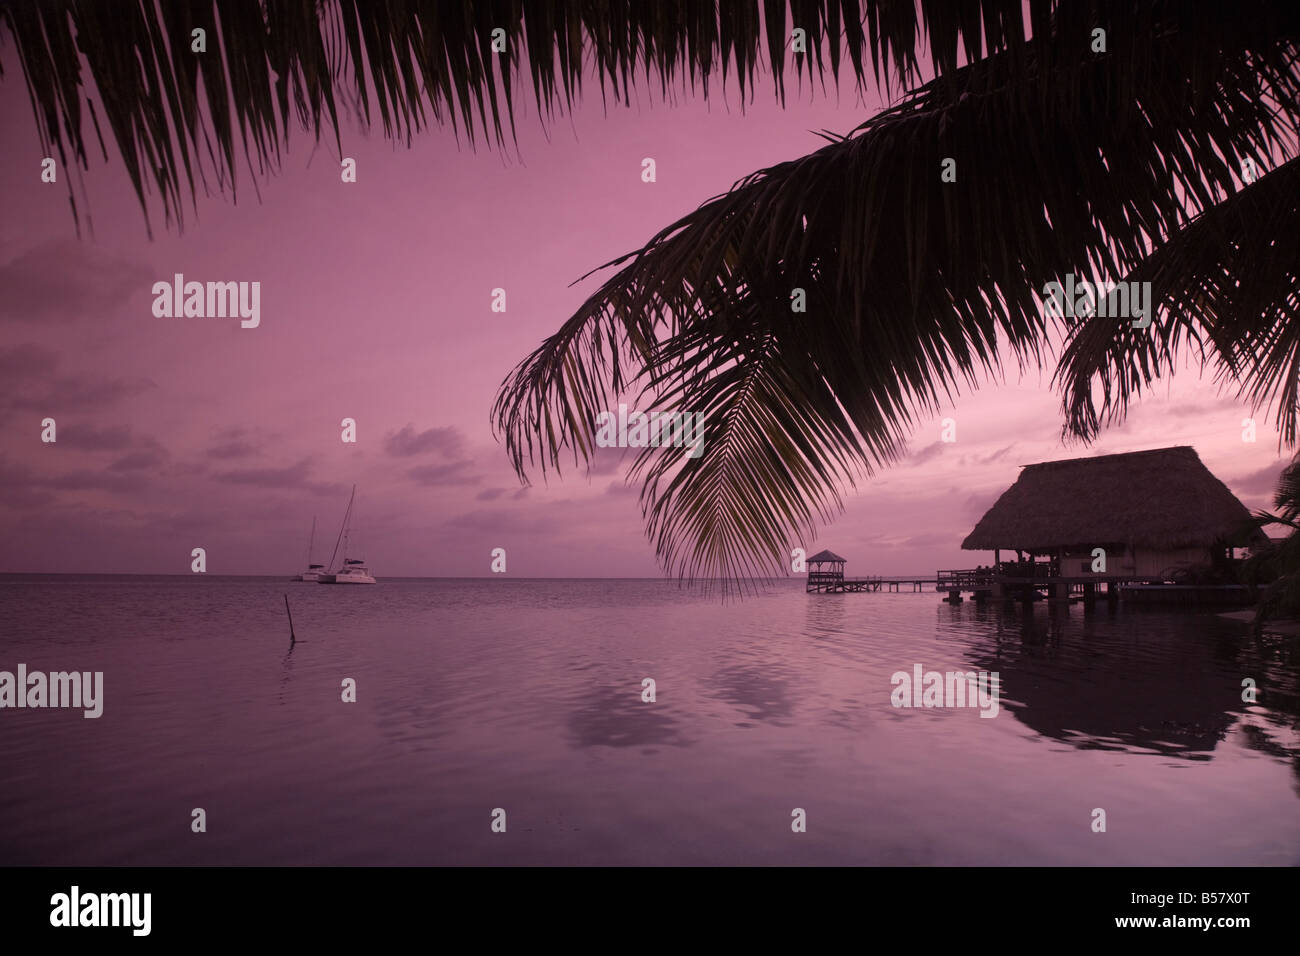 People in beach bar near the Moorings at sunset, Placencia, Belize, Central America - Stock Image